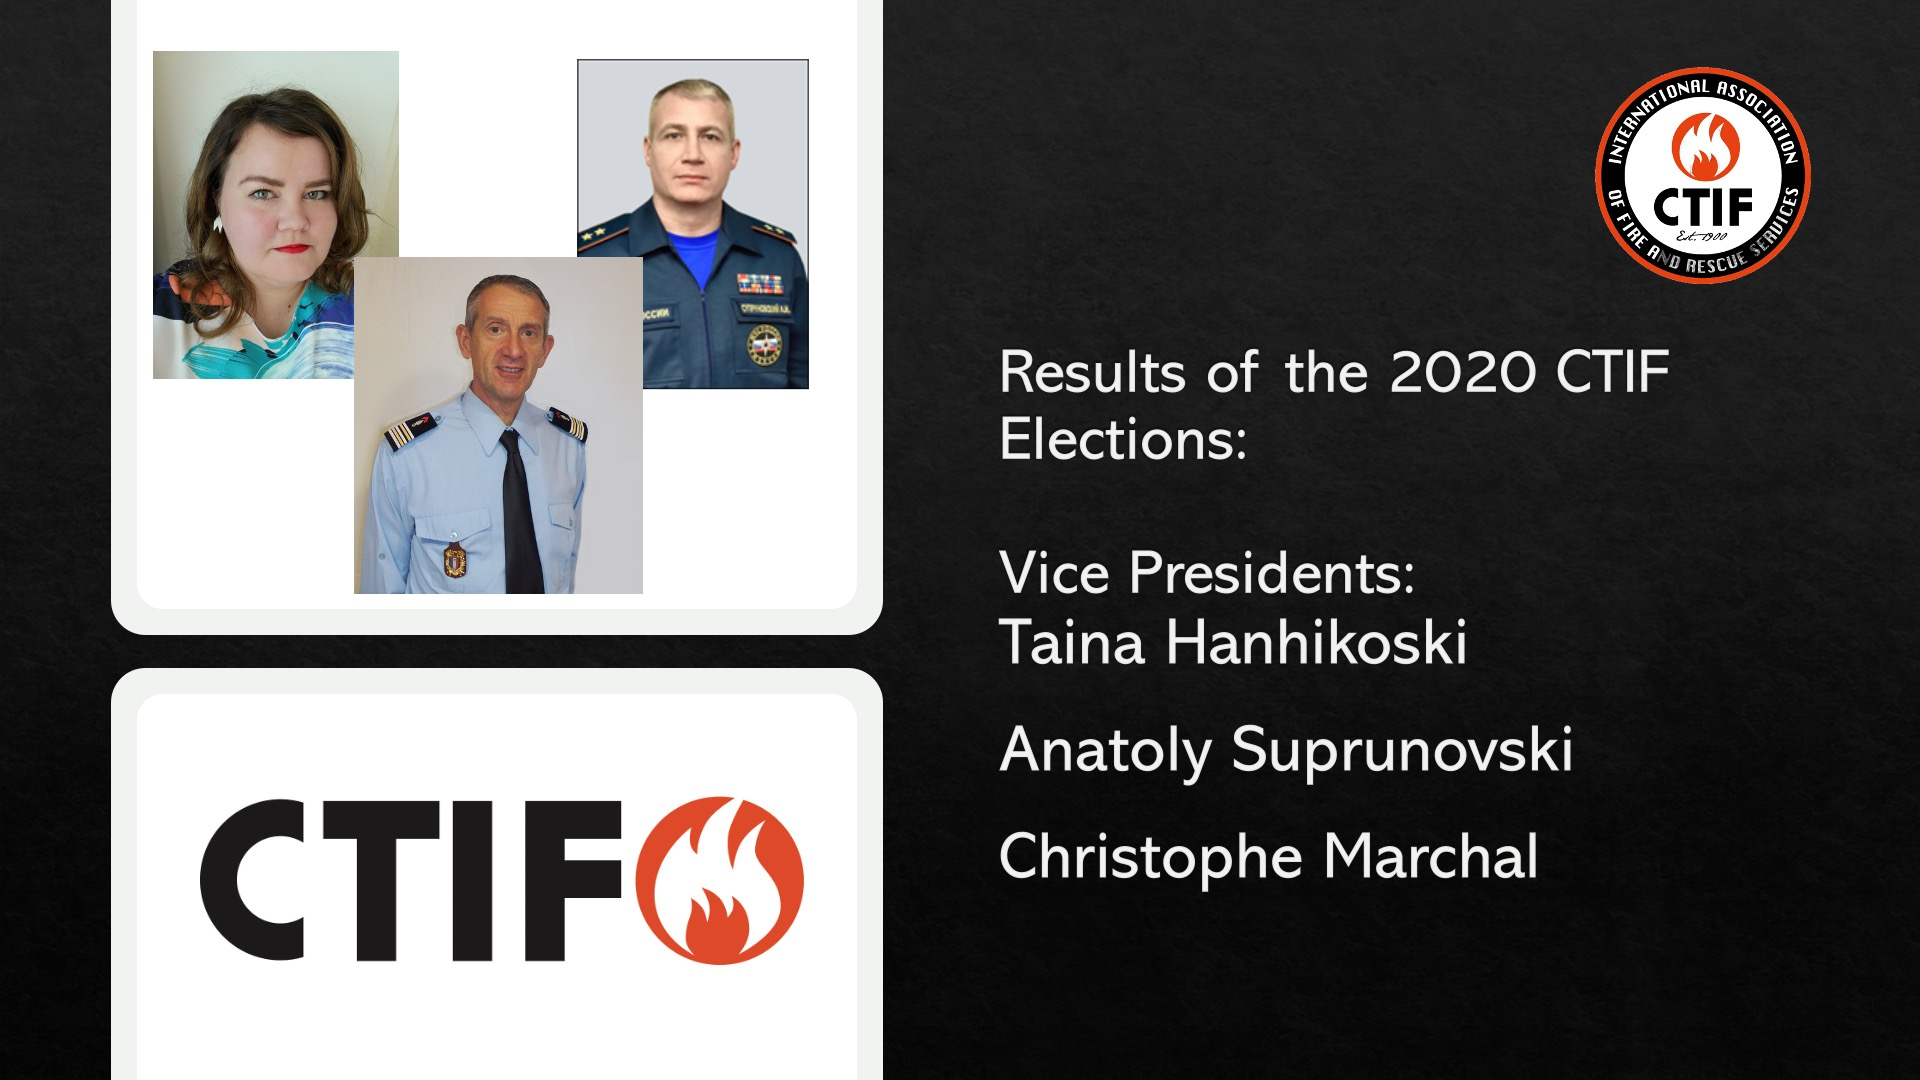 Three new CTIF Vice Presidents as of October 21 2020